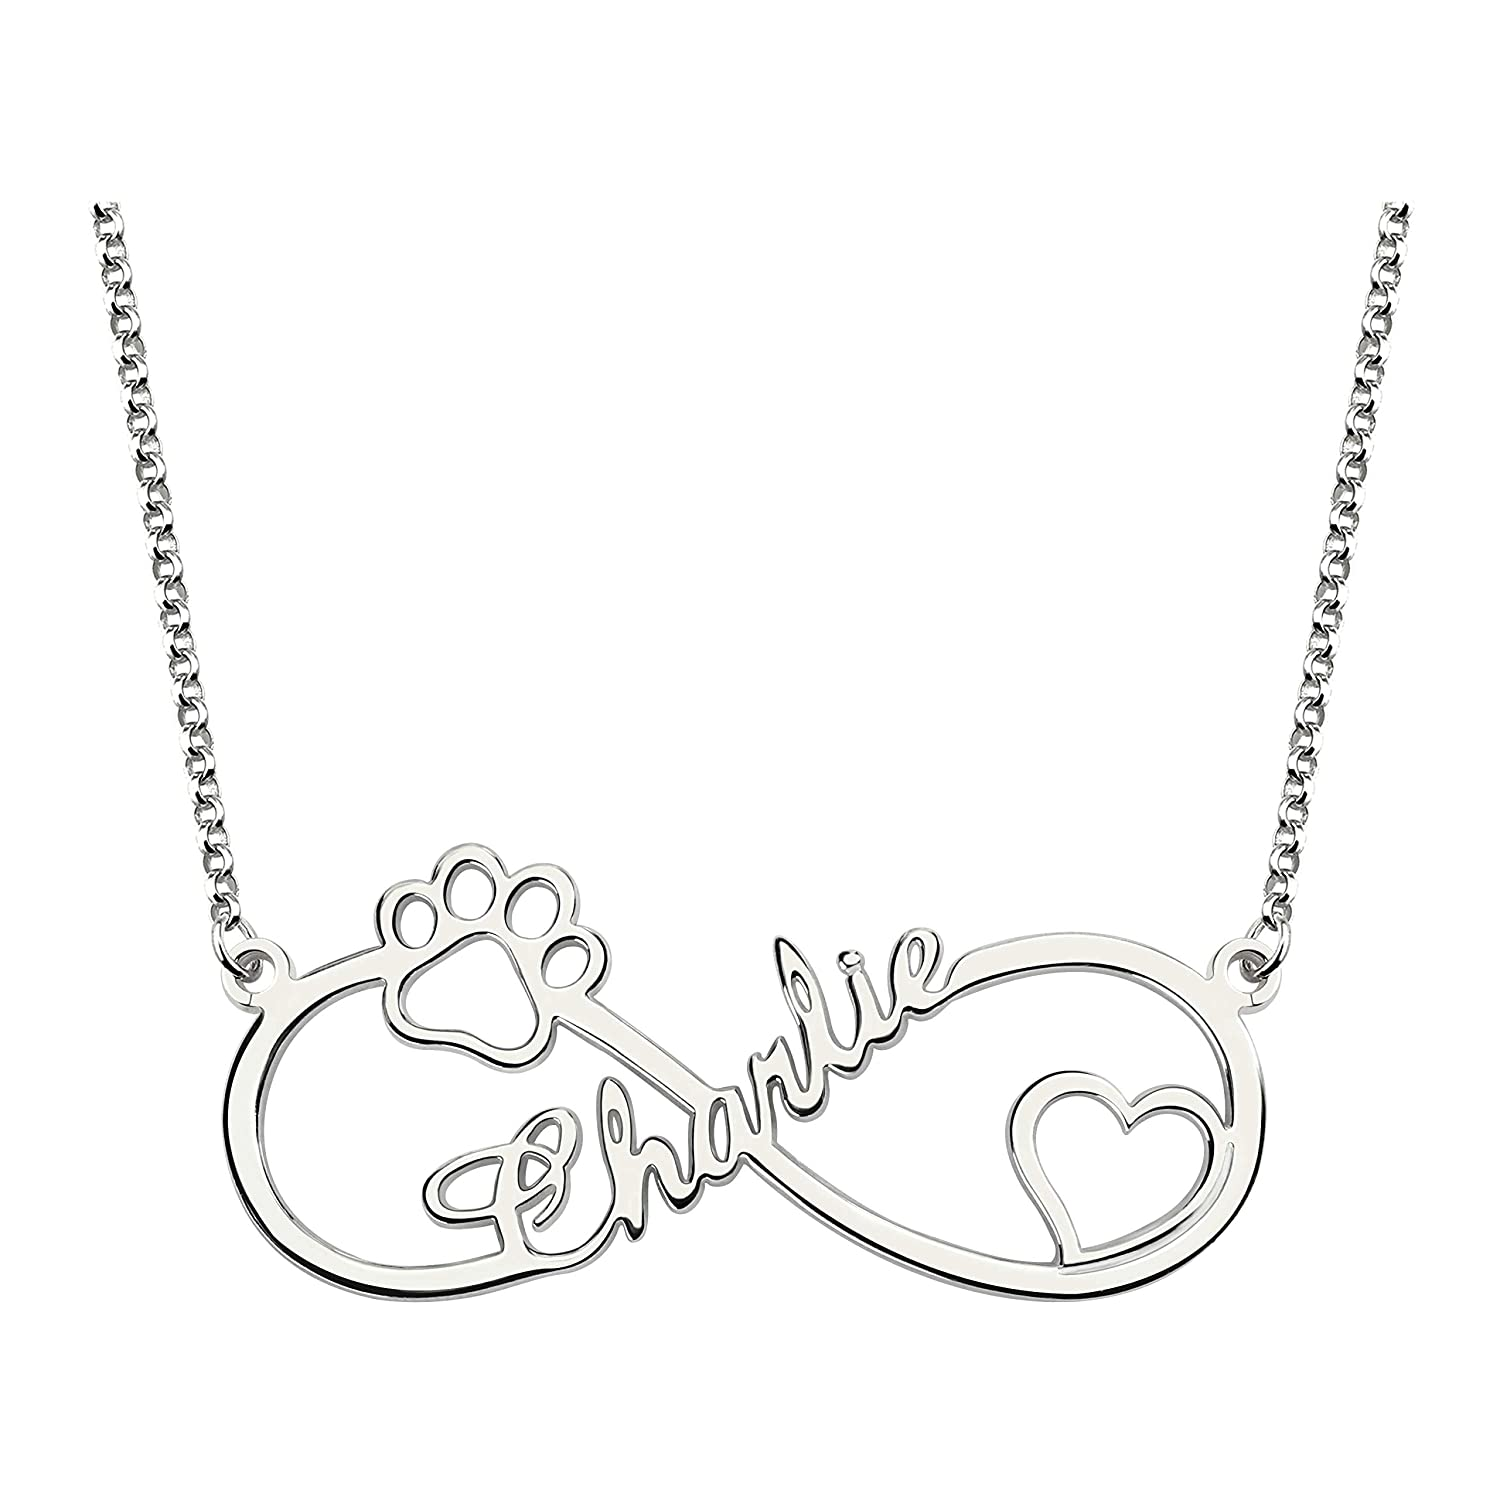 Getname Necklace Infinity Name Necklace Heart and Paw Cut Out Personalized Your Unique Gifts Jewlry